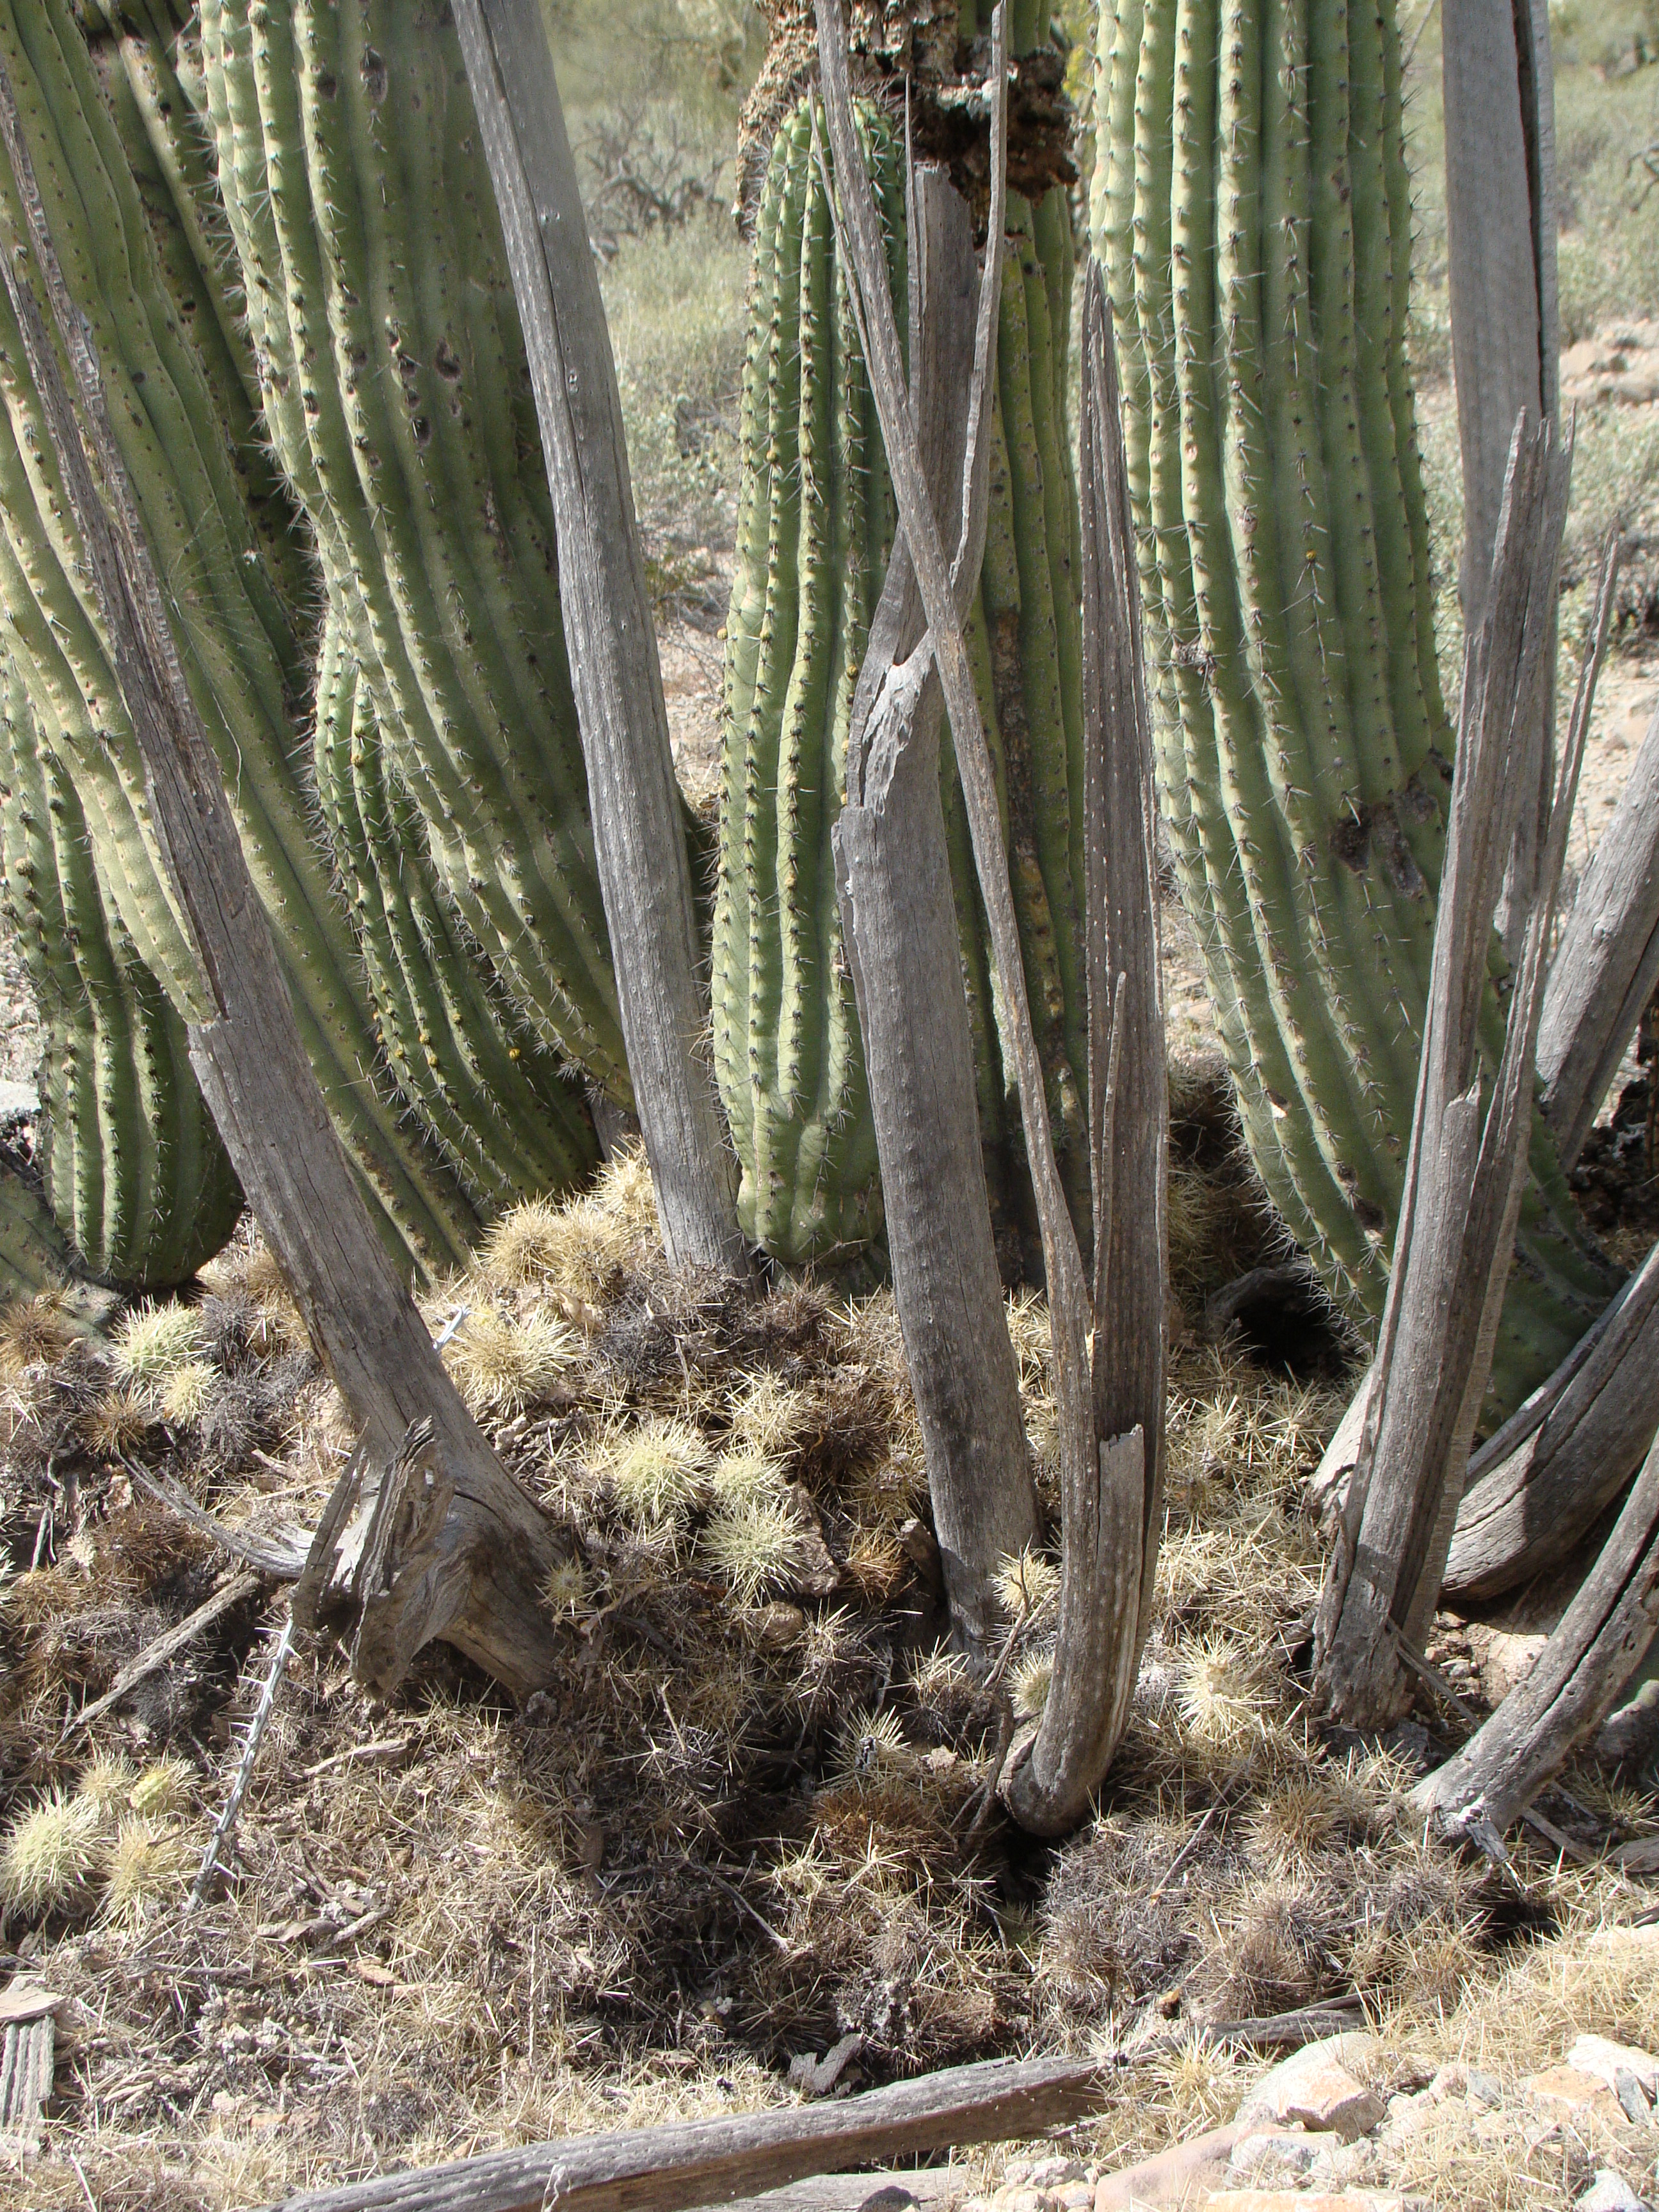 Packrat midden at the base of an organ pipe cactus